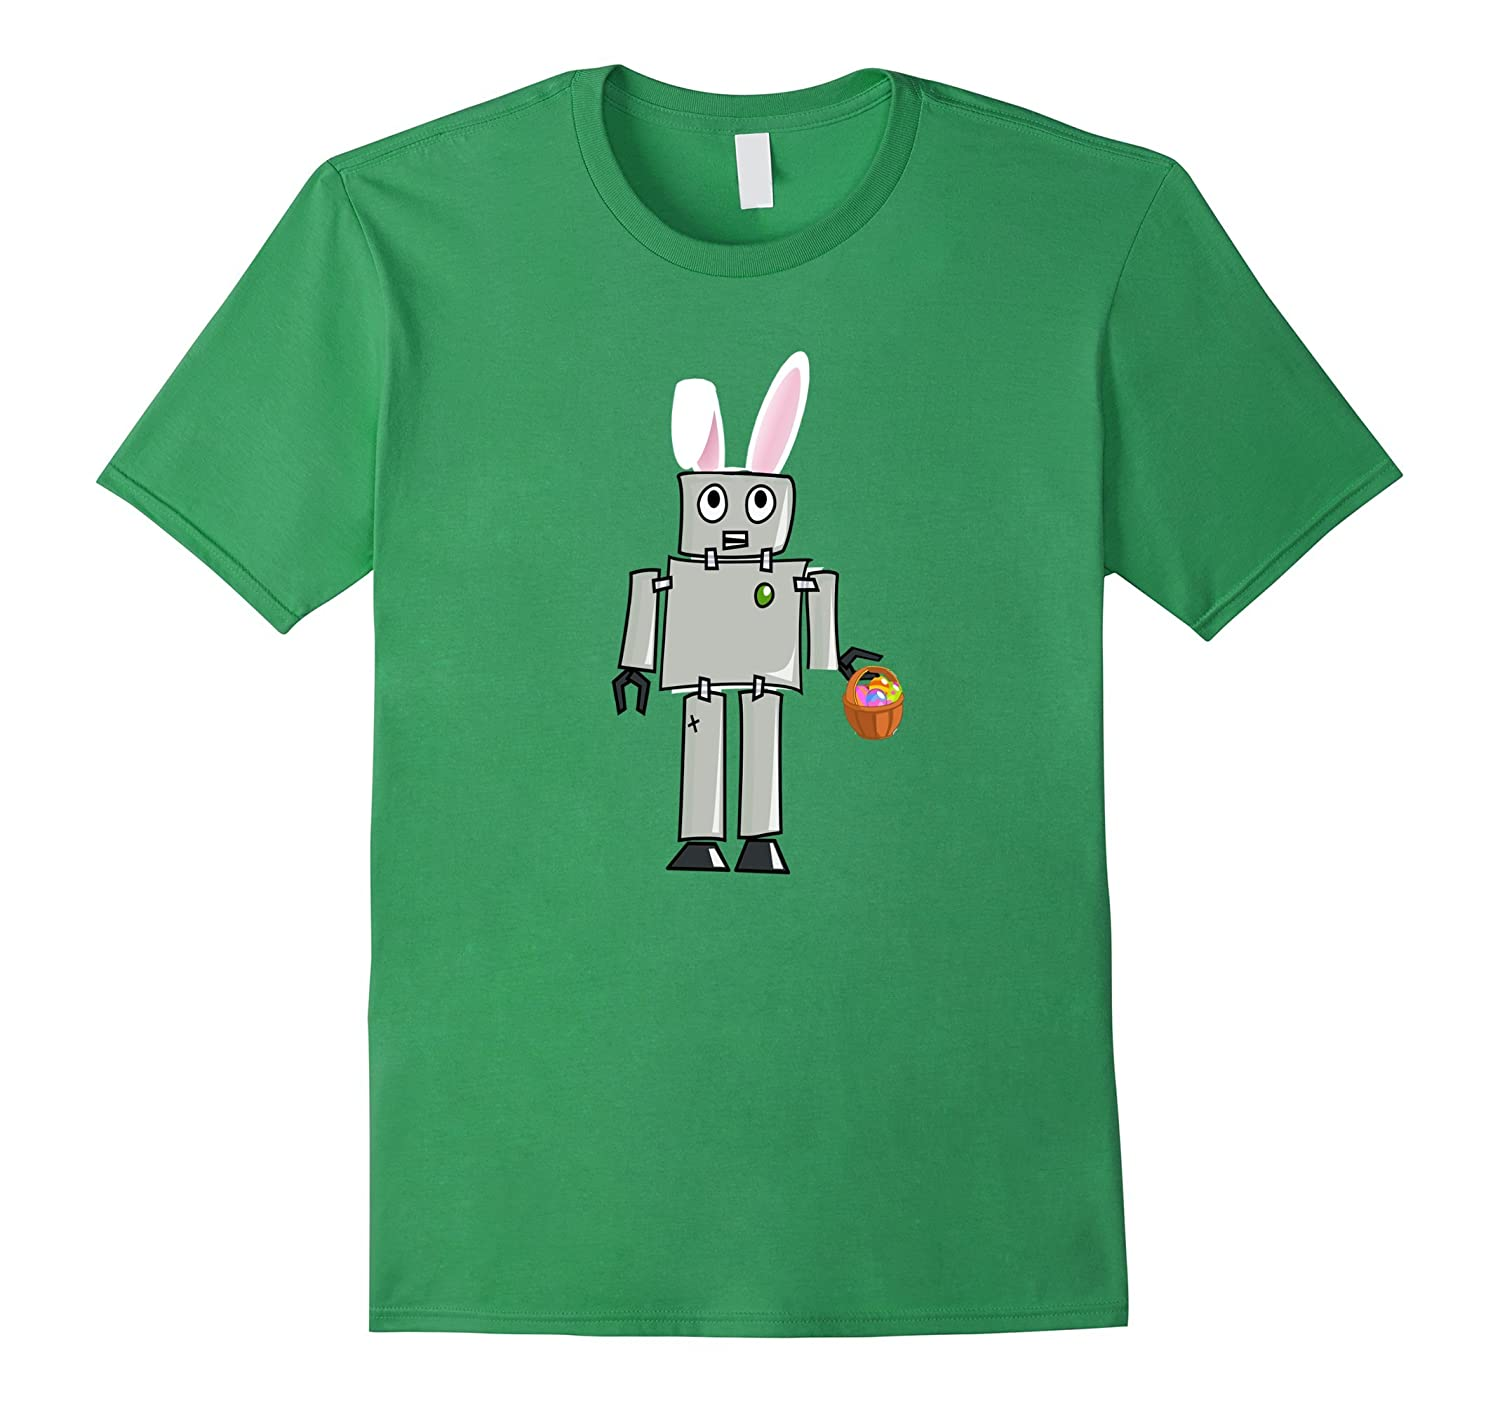 Funny Robot Easter Bunny Tshirts For Men Women And Kids-CD